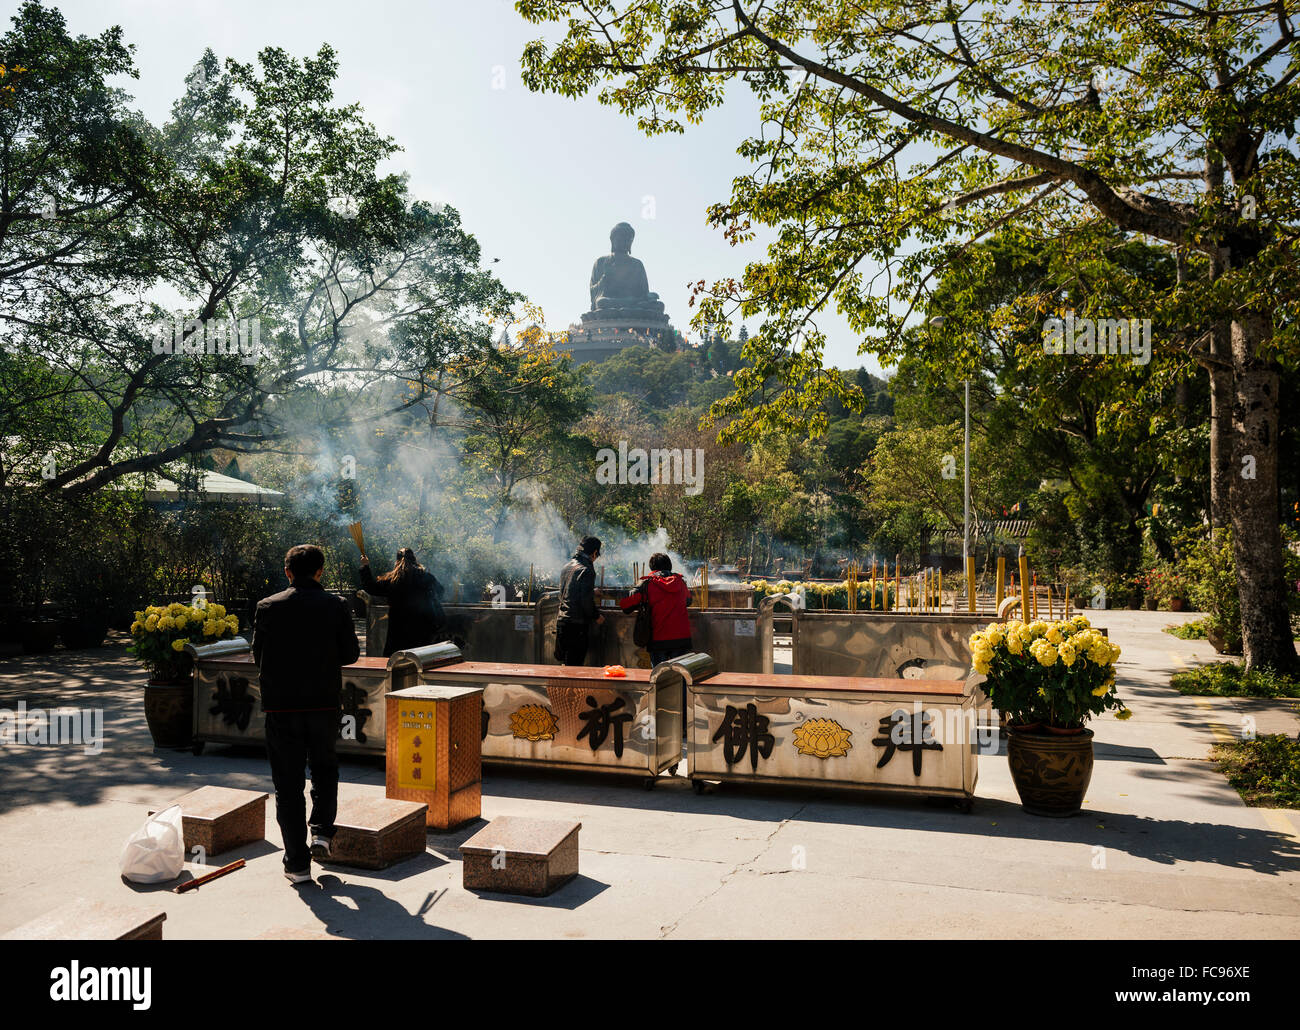 People lighting incense at Po Lin Monastery with Big Buddha statue in background, Lantau Island, Hong Kong, China, - Stock Image